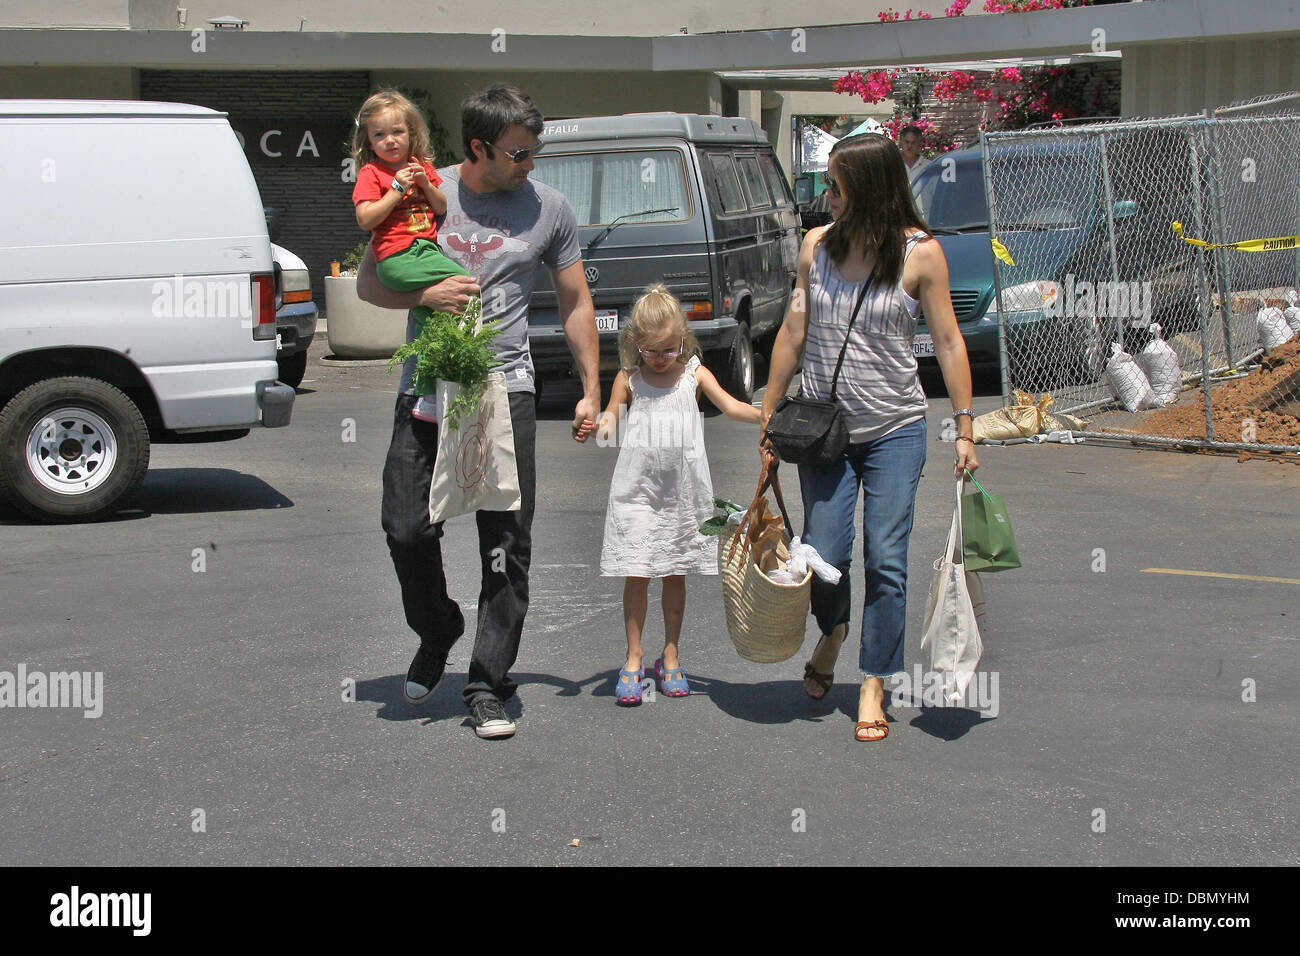 Ben Affleck and Jennifer Garner go to the farmers market with their daughters Violet and Seraphina Los Angeles, - Stock Image